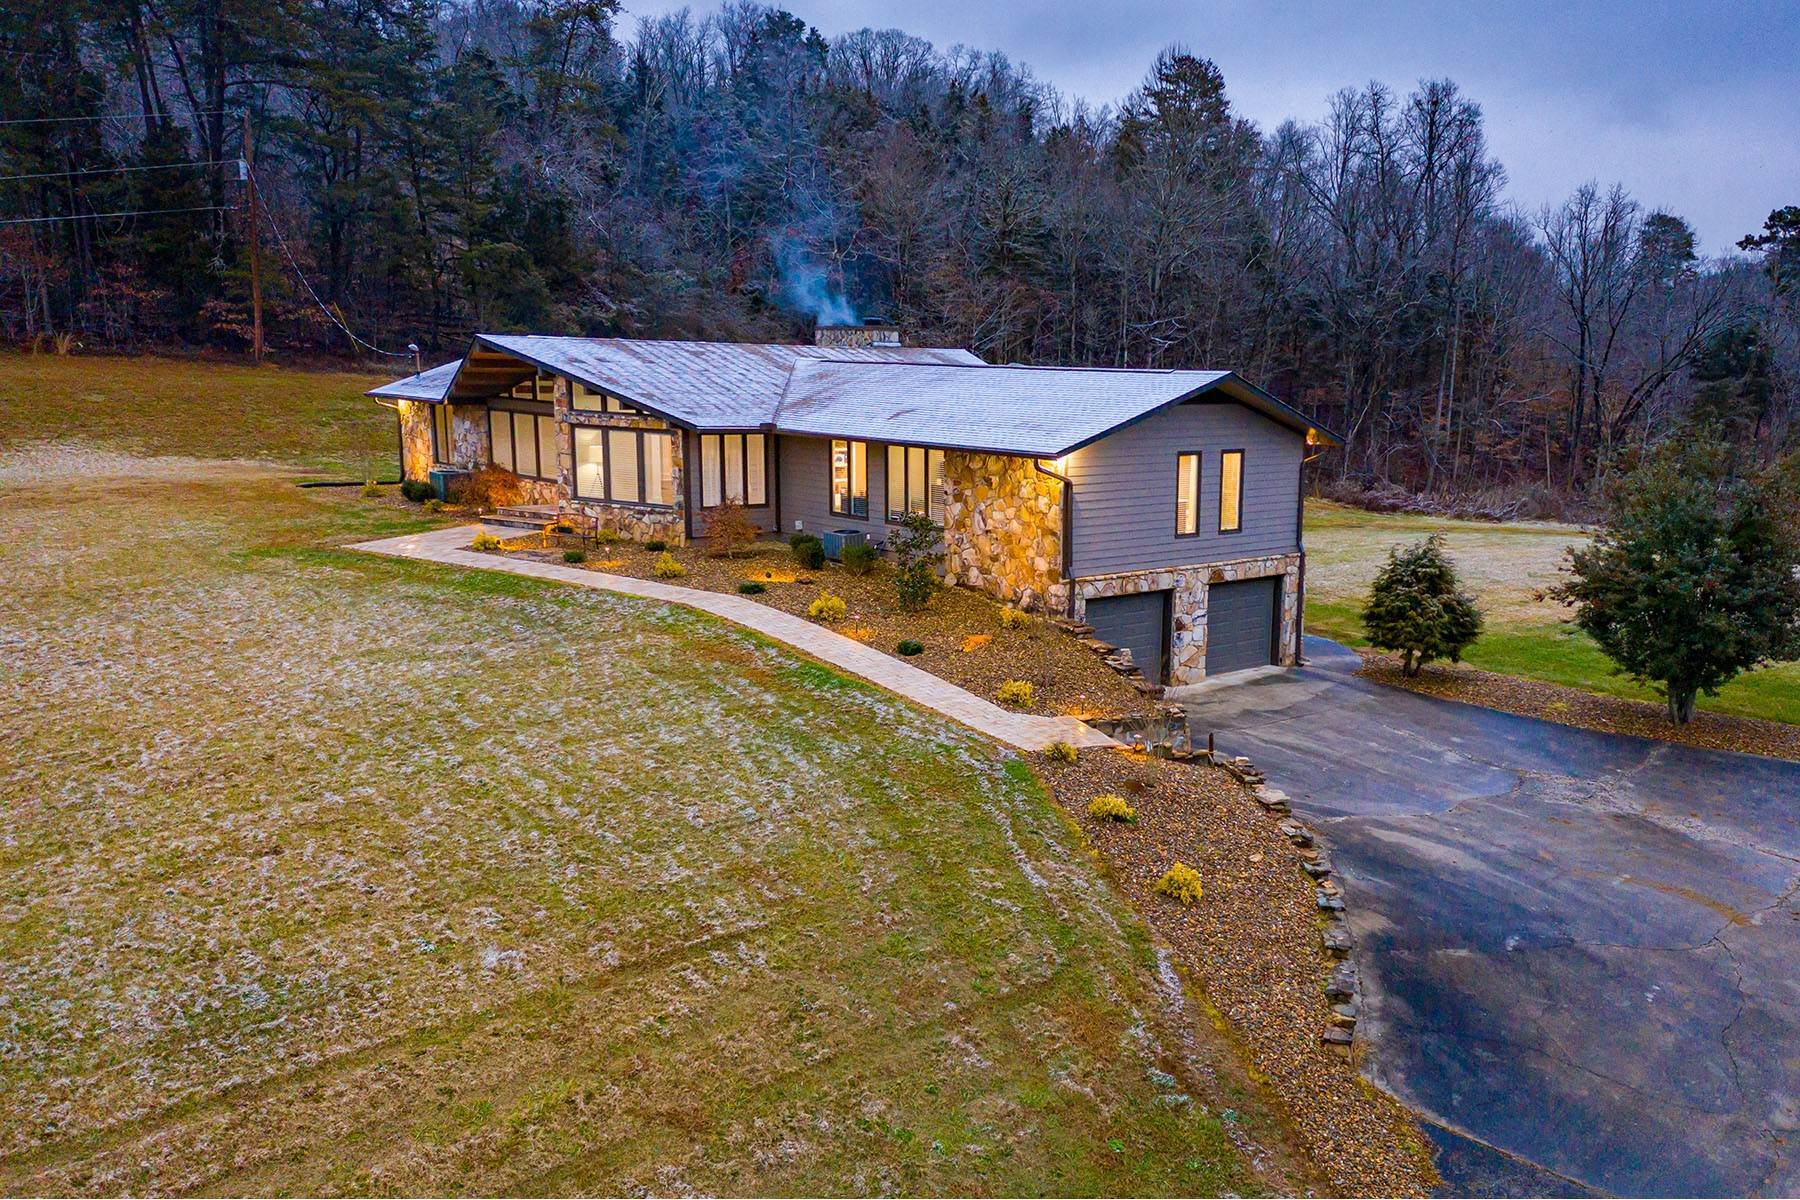 Single Family Homes for Sale at Stunning, Completely Renovated Home On 33 Acres 4306 Douglas Dam Road Kodak, Tennessee 37764 United States